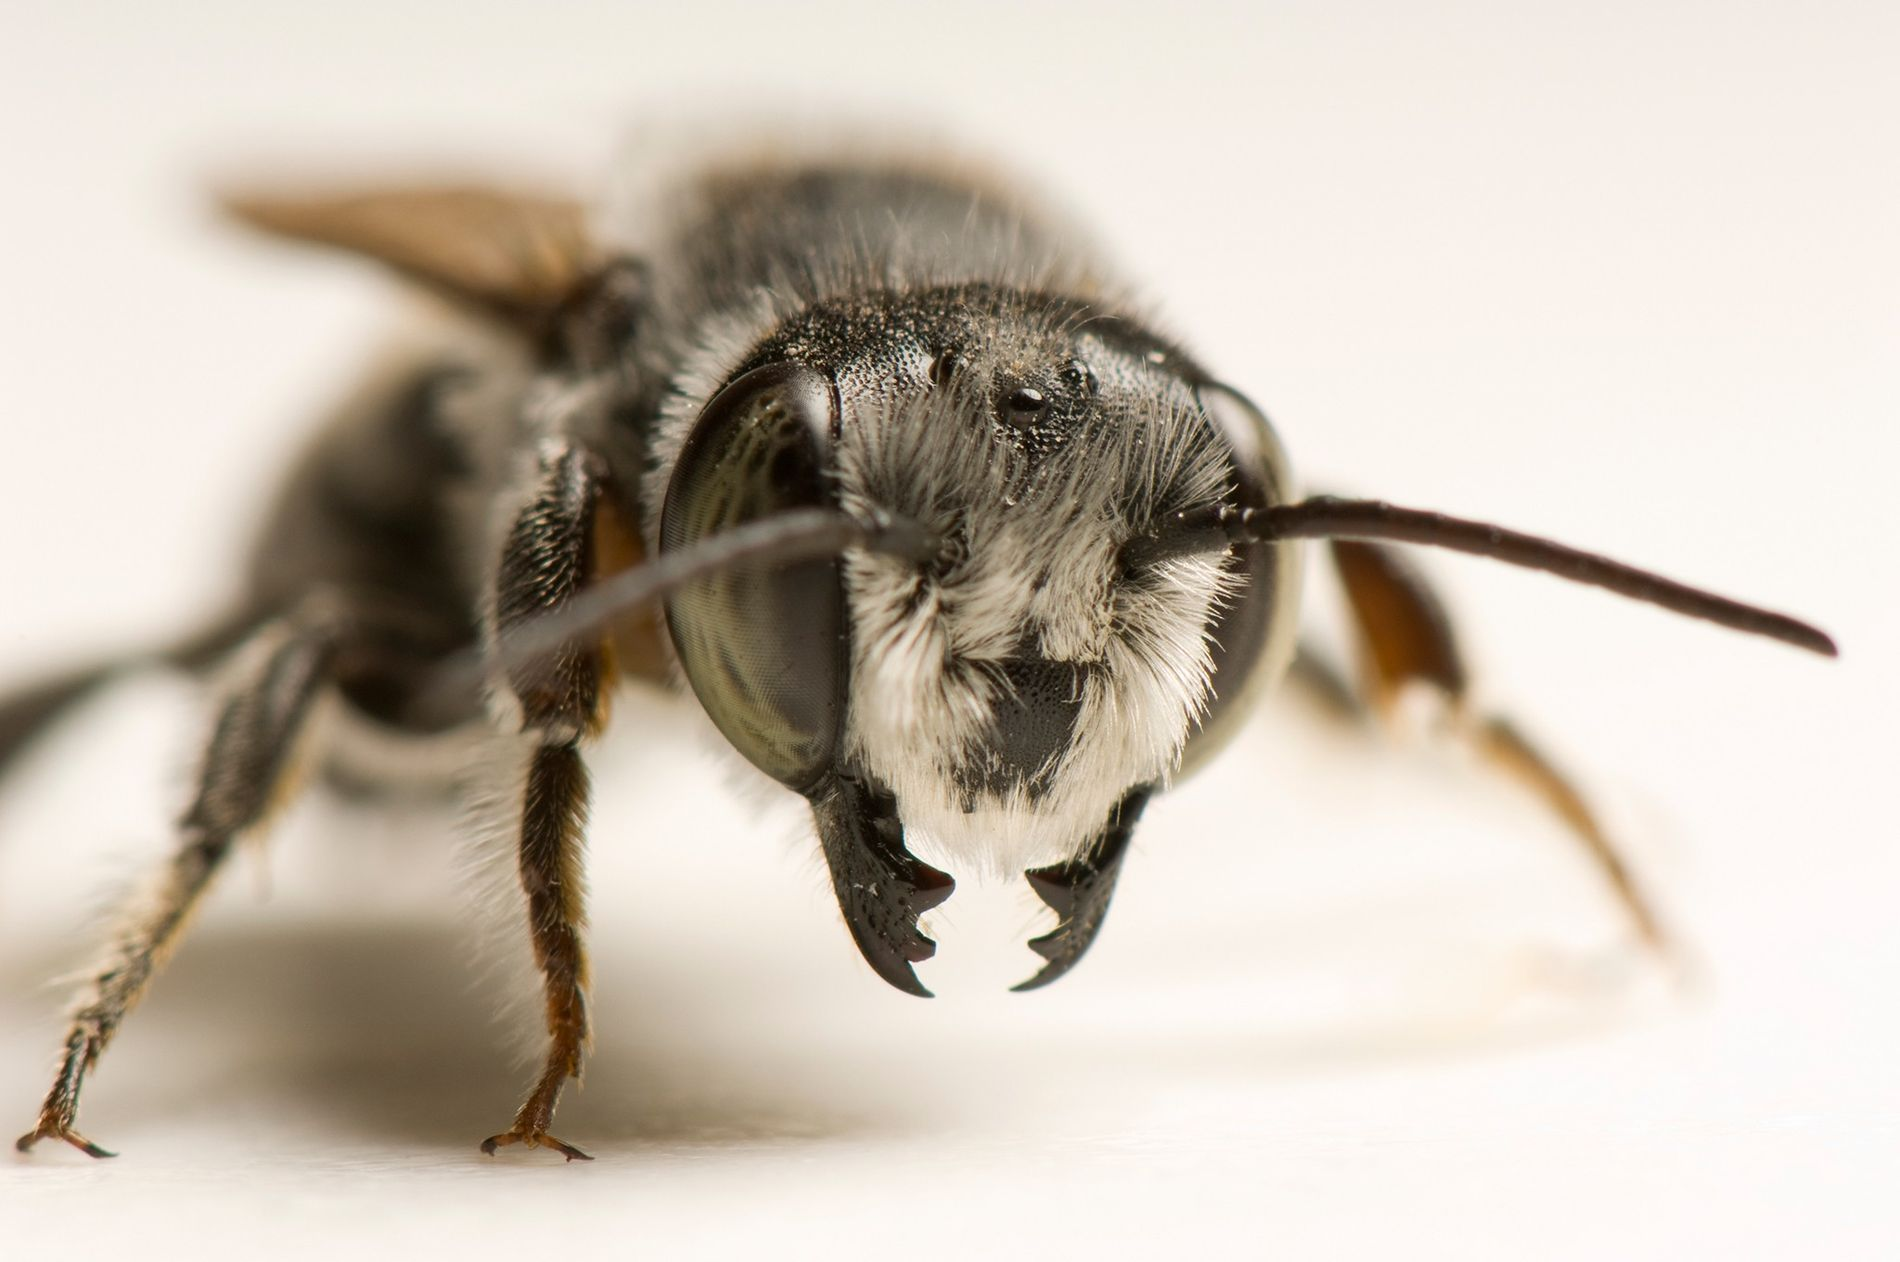 Portrait of a leaf cutter bee, the species believed to be using plastic for construction material ...